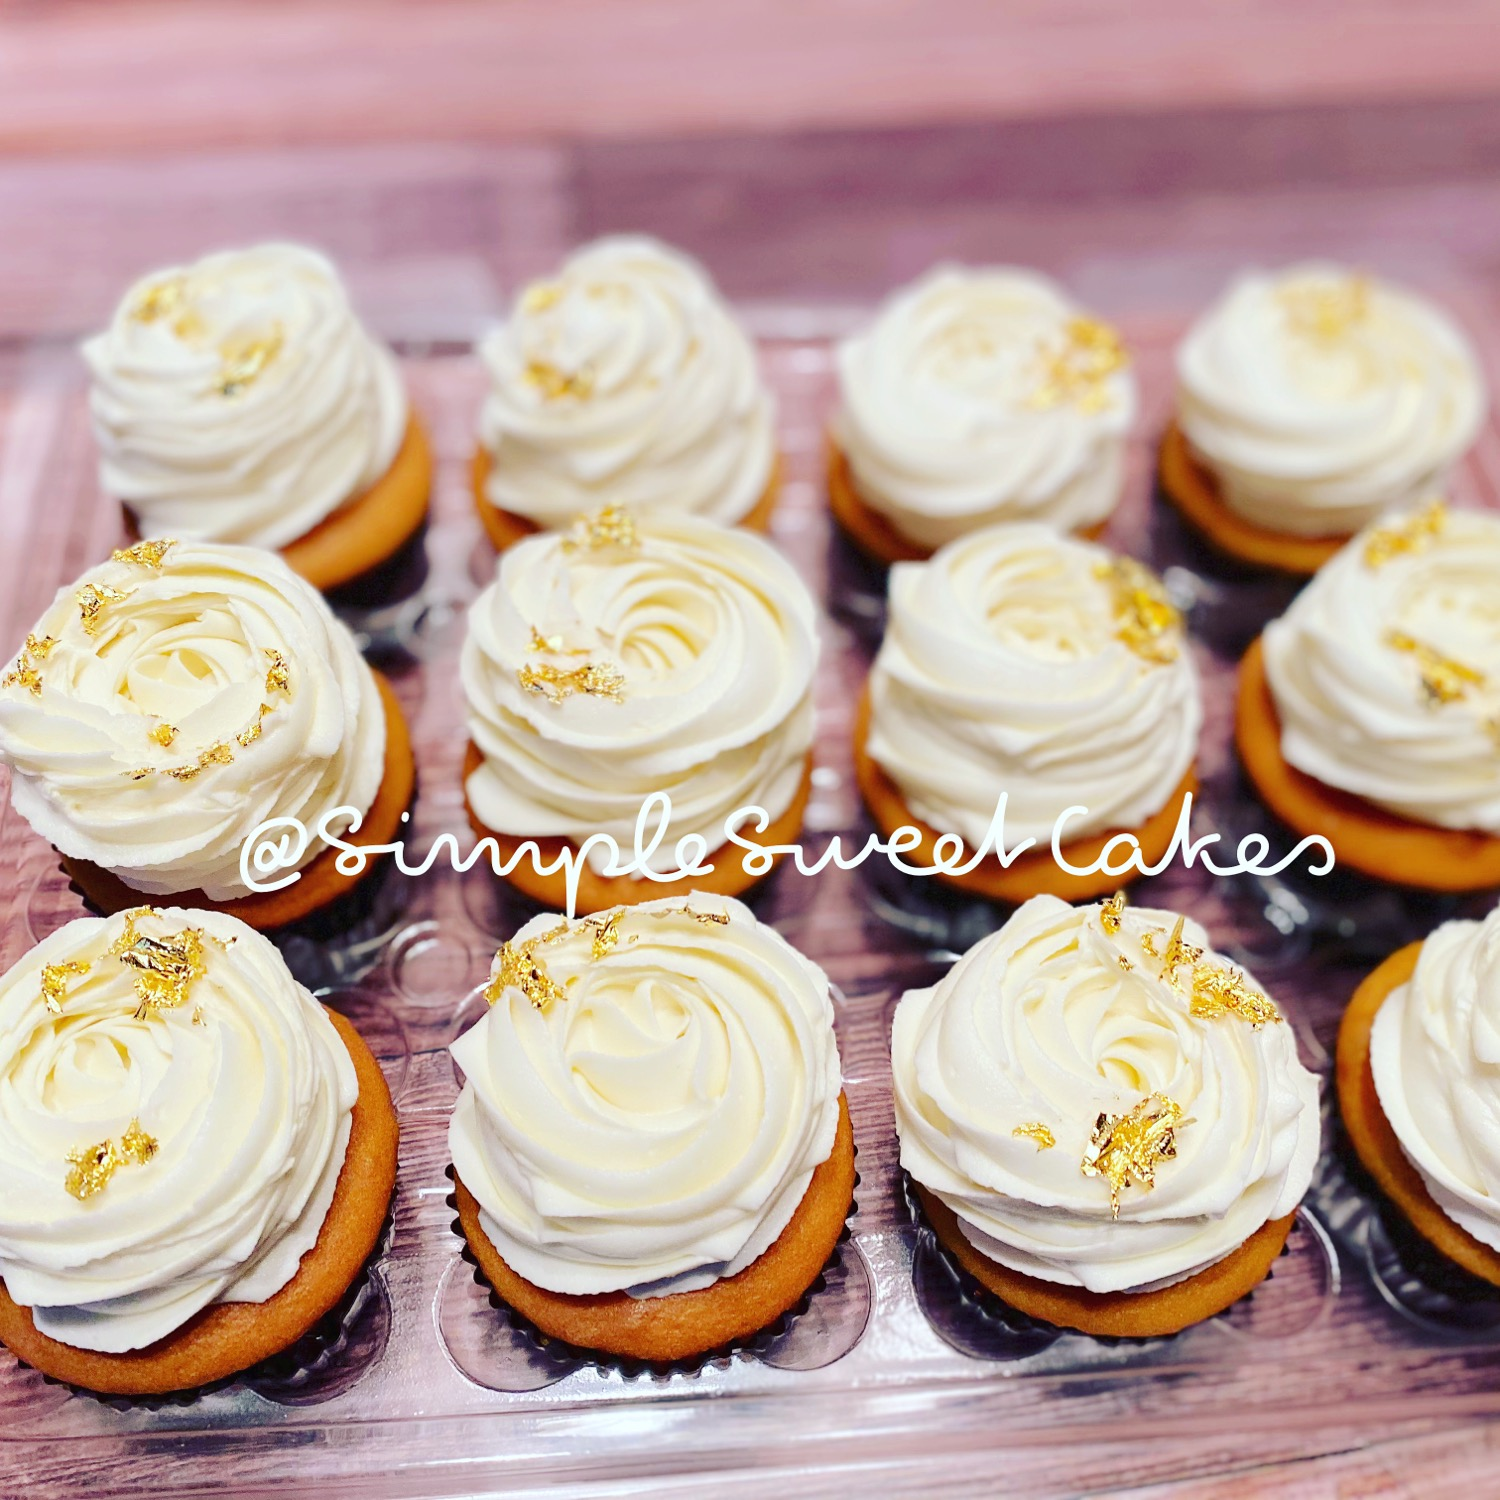 Vanilla Cupcakes with Edible Gold Leaf